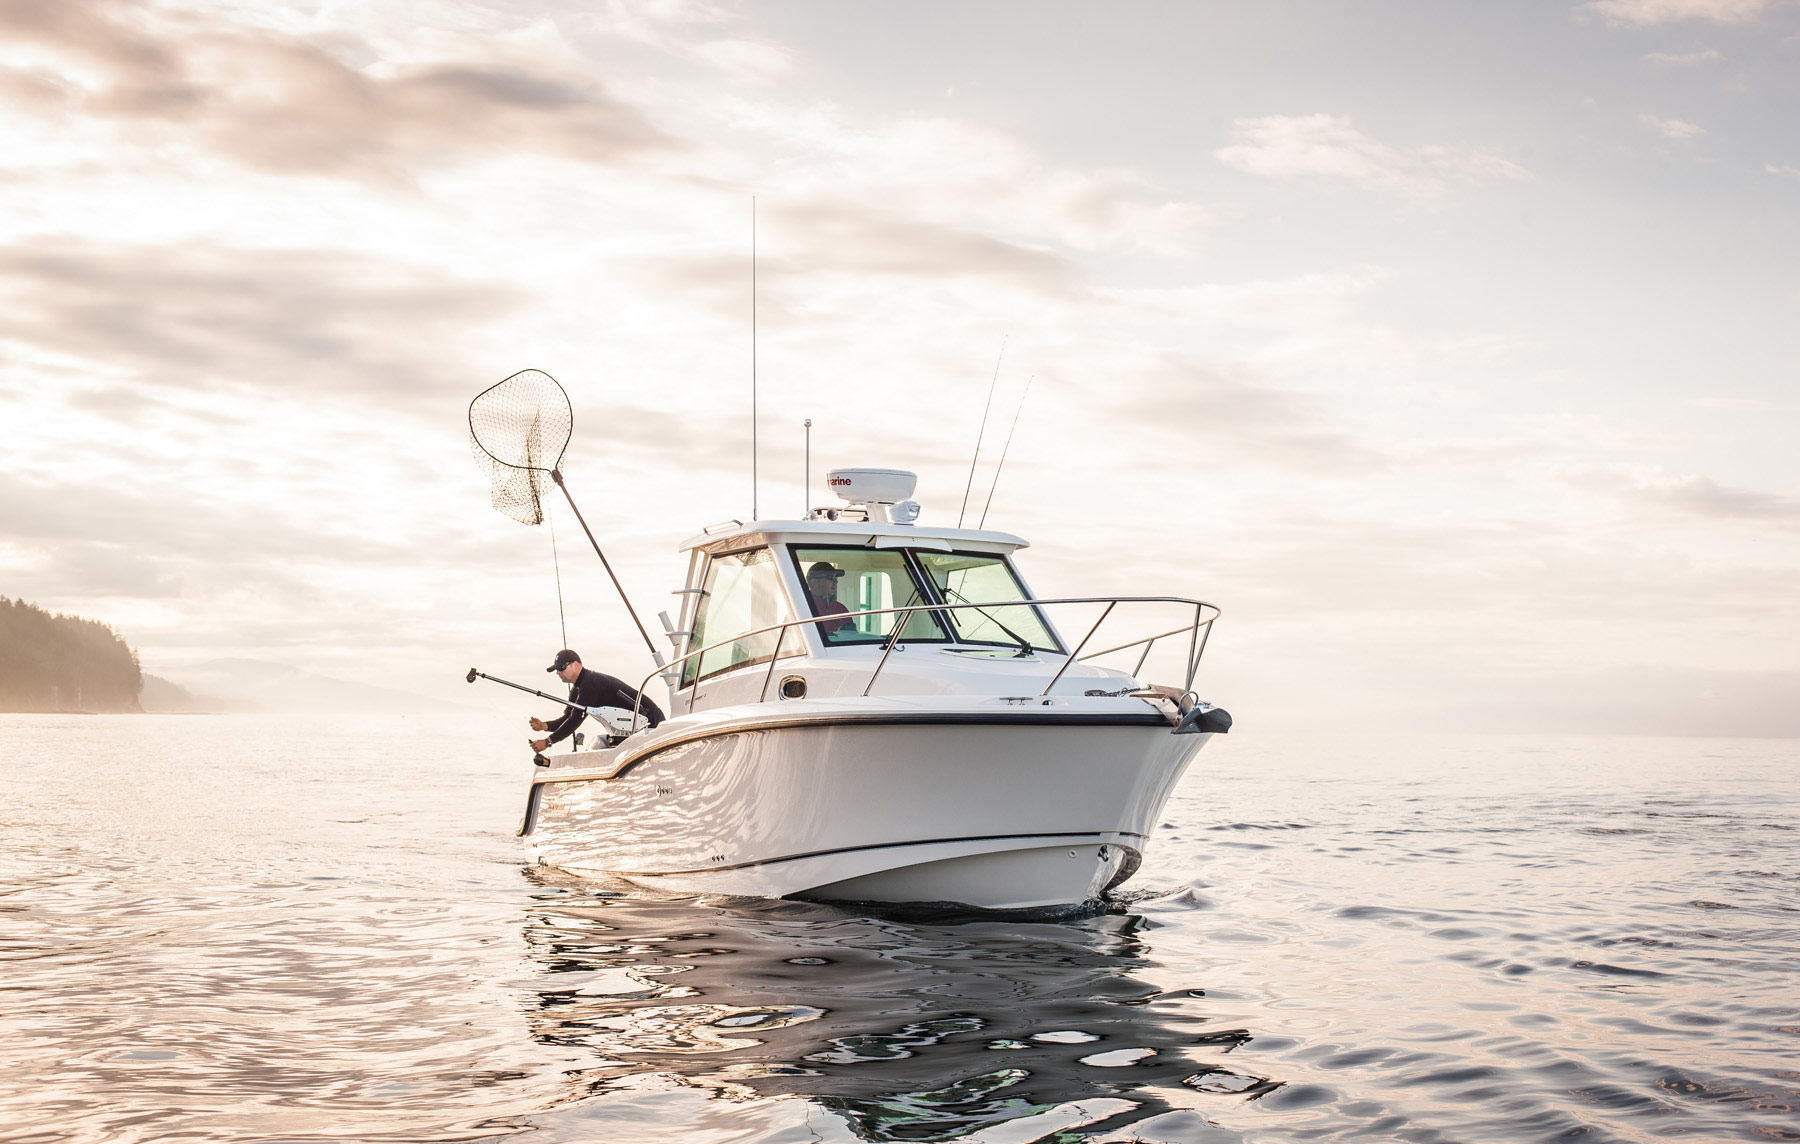 Fishing Marine Photographer Richard Steinberger